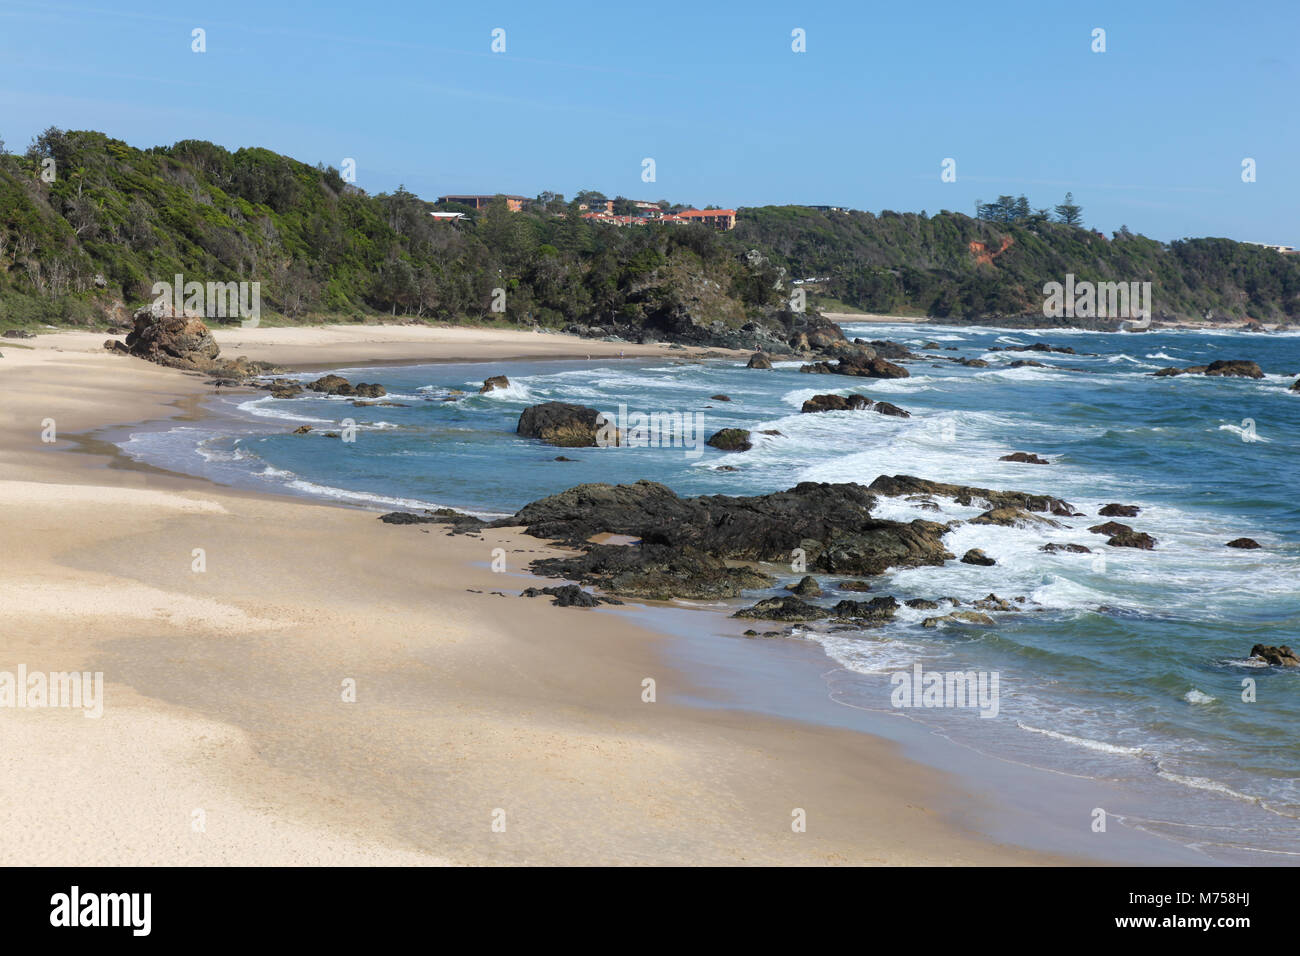 Nobby Beach in Port Macquarie on the NSW Mid-north coast - Australia. There are many beautiful beaches in the area - Stock Image